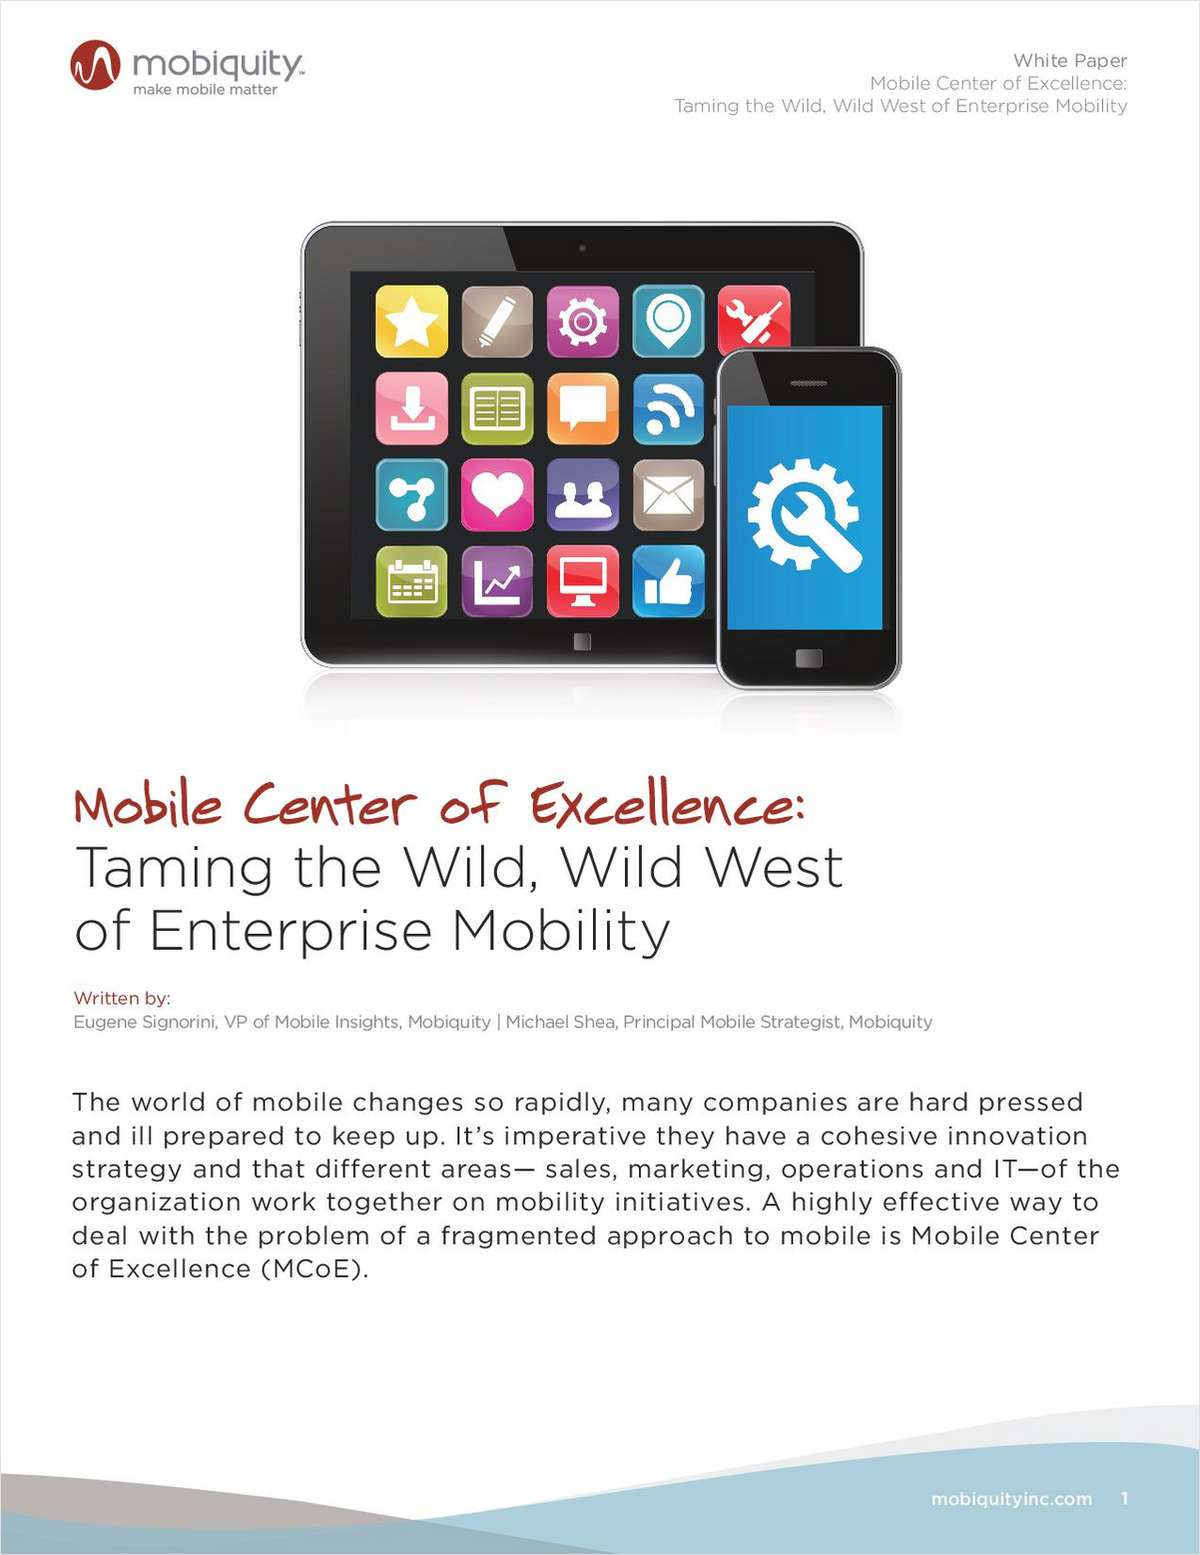 Mobile Center of Excellence: Taming the Wild, Wild West of Enterprise Mobility